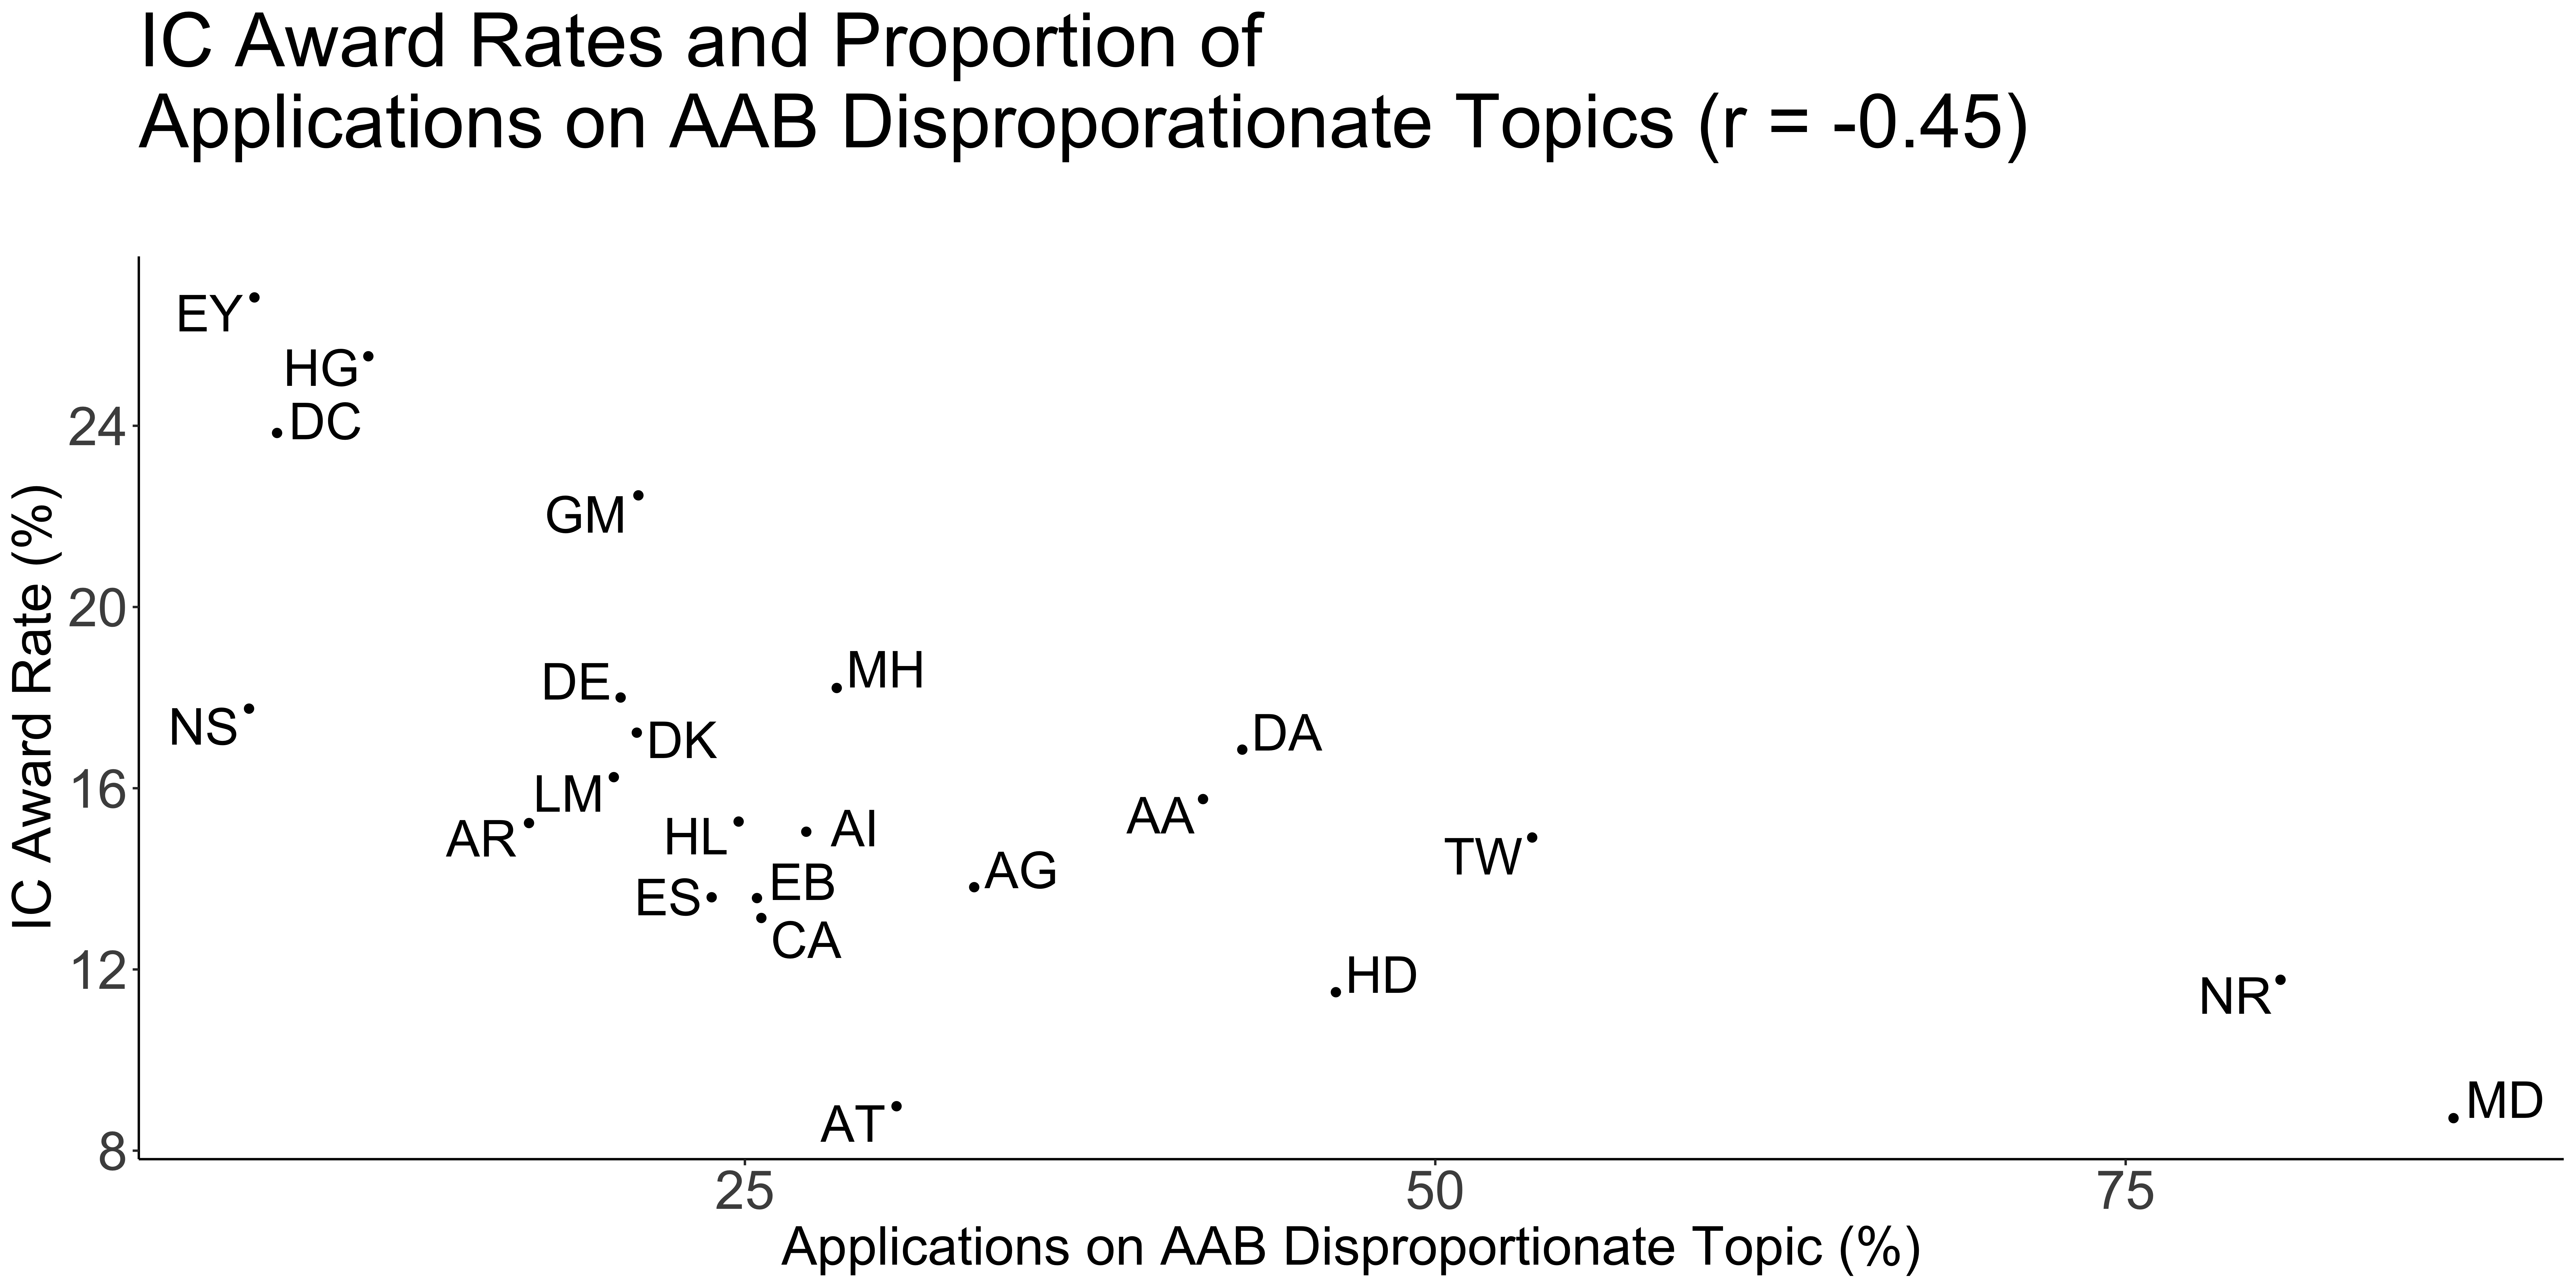 Figure 2. Proportion of applications in selected AAB disproportionate topics relative to IC award rates.